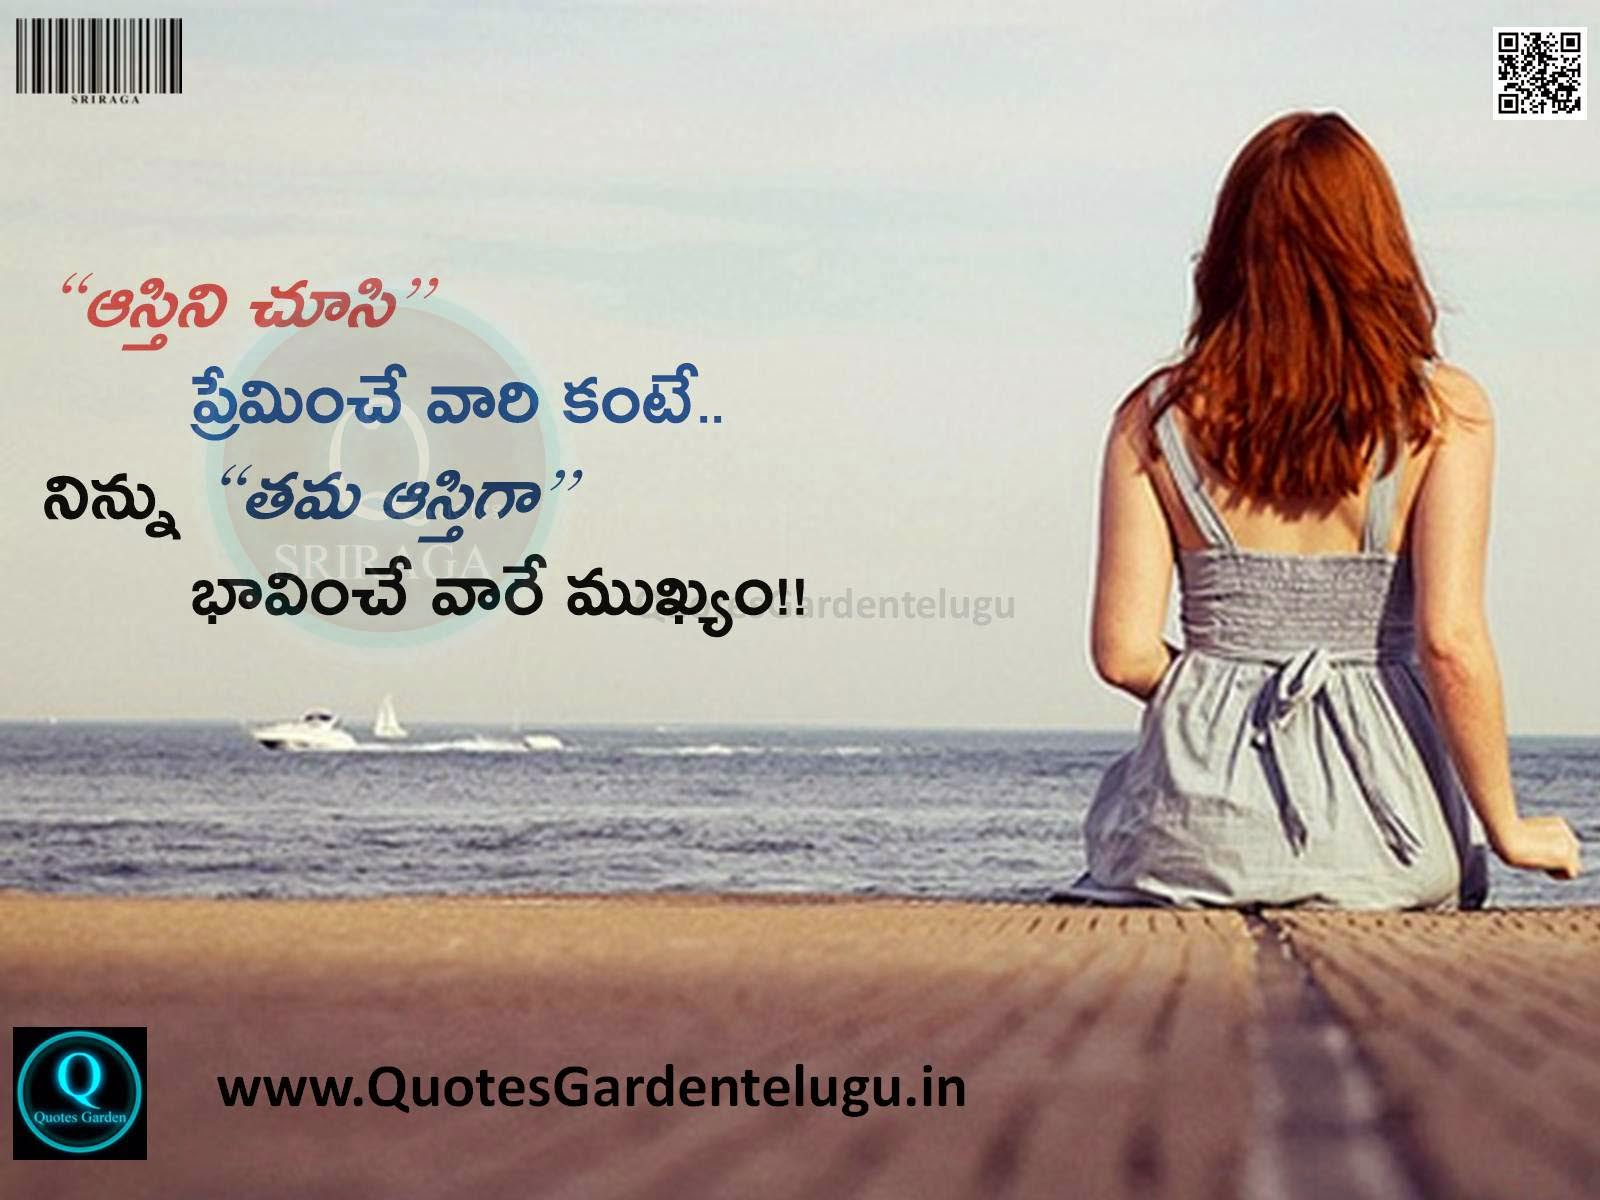 Quotes Friendship Magnificent Ravikumar Ravikumar9063870 On Pinterest